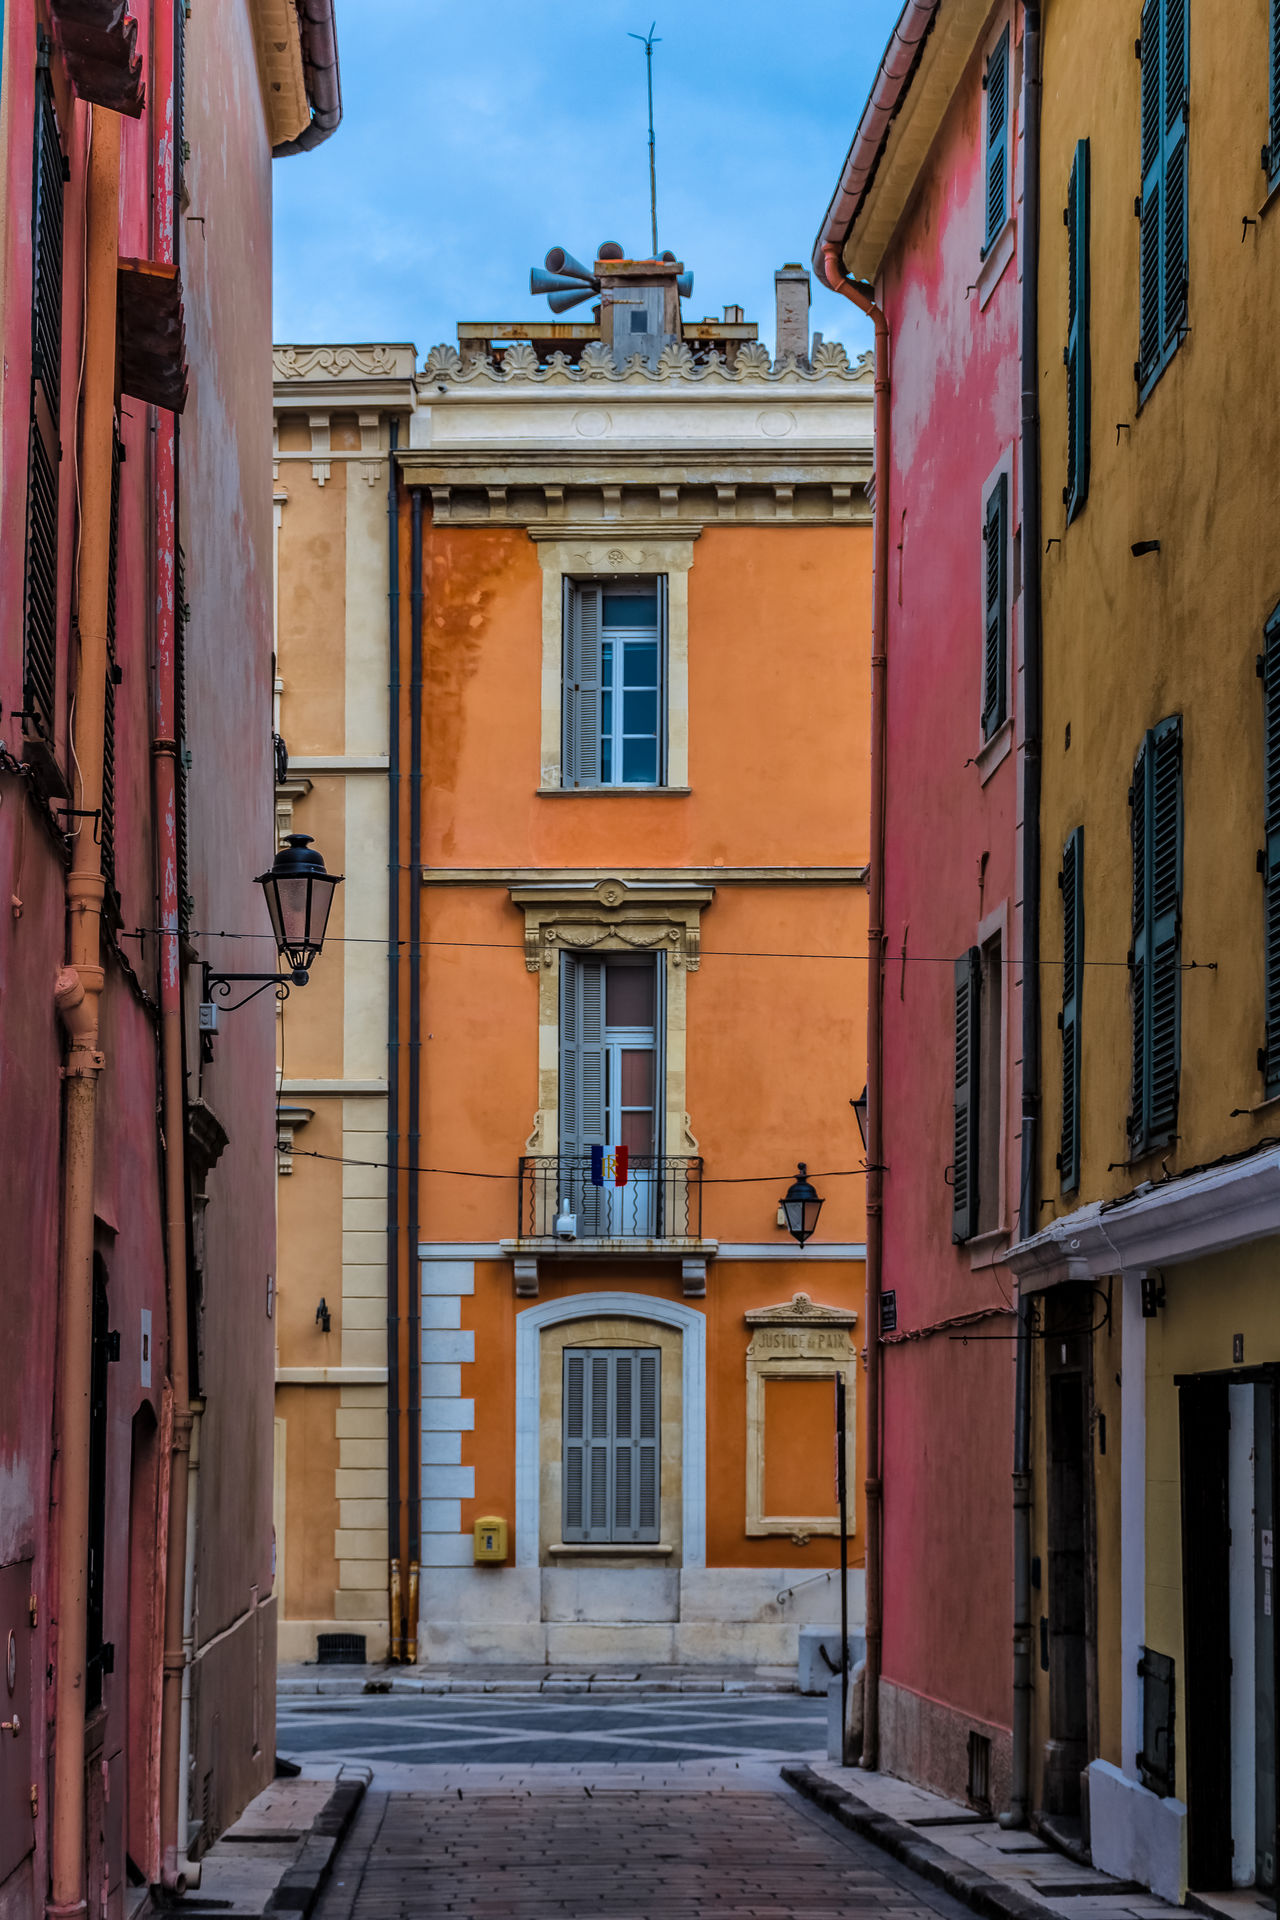 Architecture Building Exterior Built Structure Colorfull Day Door France No People Outdoors Residential Building Sky St. Tropez Street Window